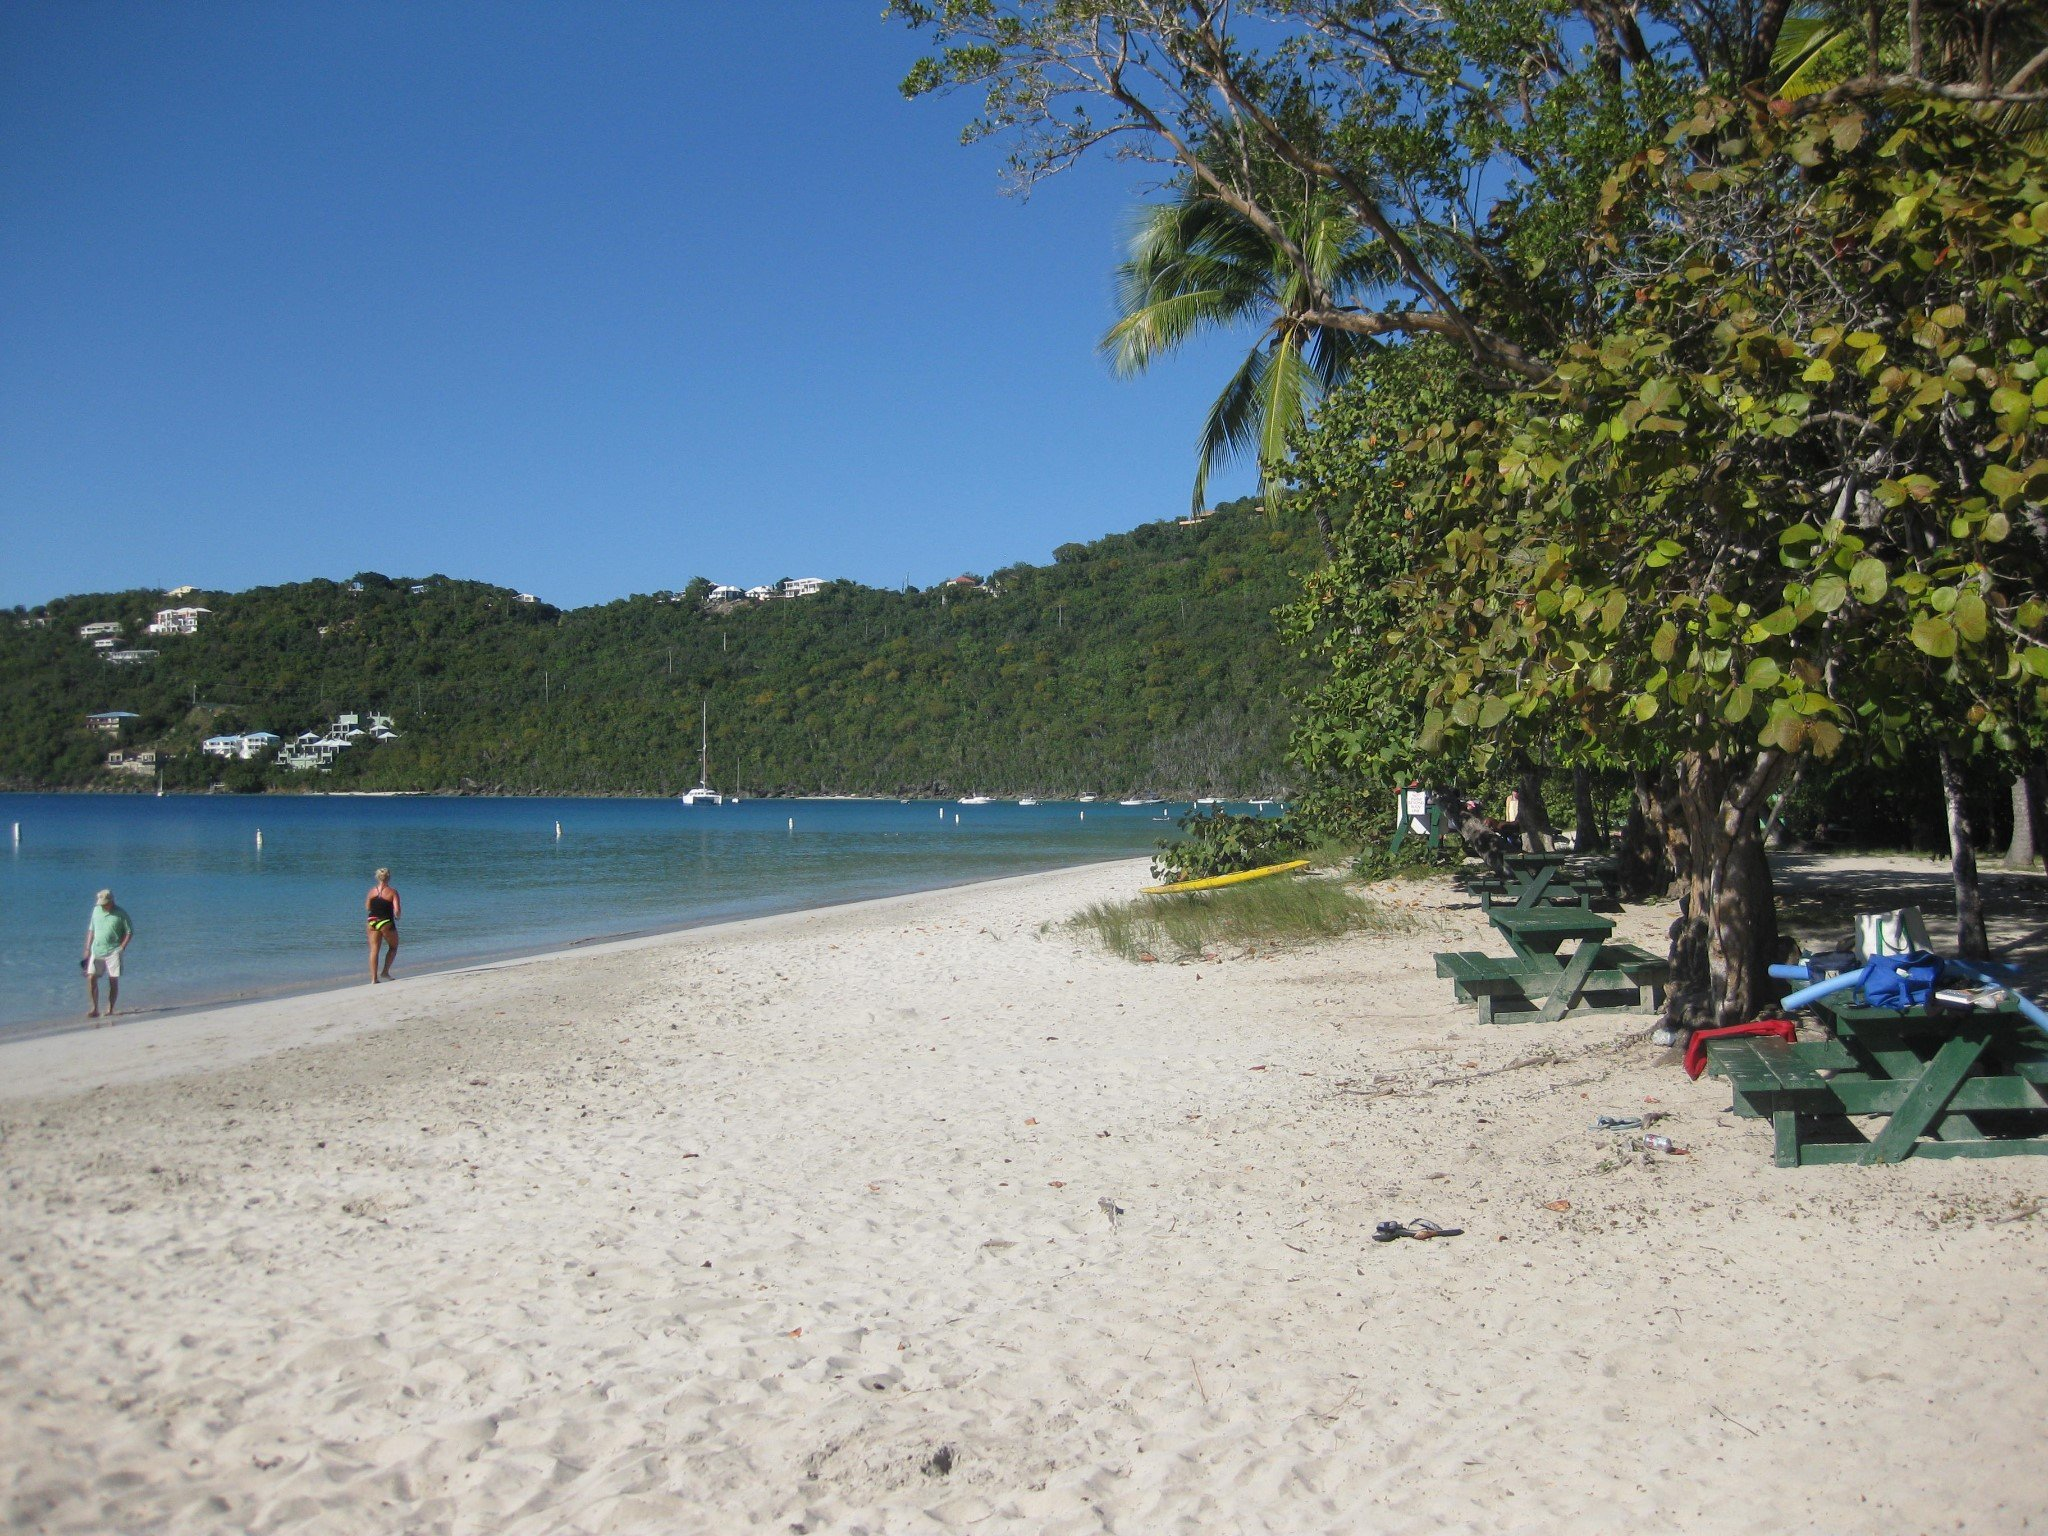 MEGANS BAY USVI, TOURISTY SPOT ONE OF THE WORLDS TOP 10 BEACHES